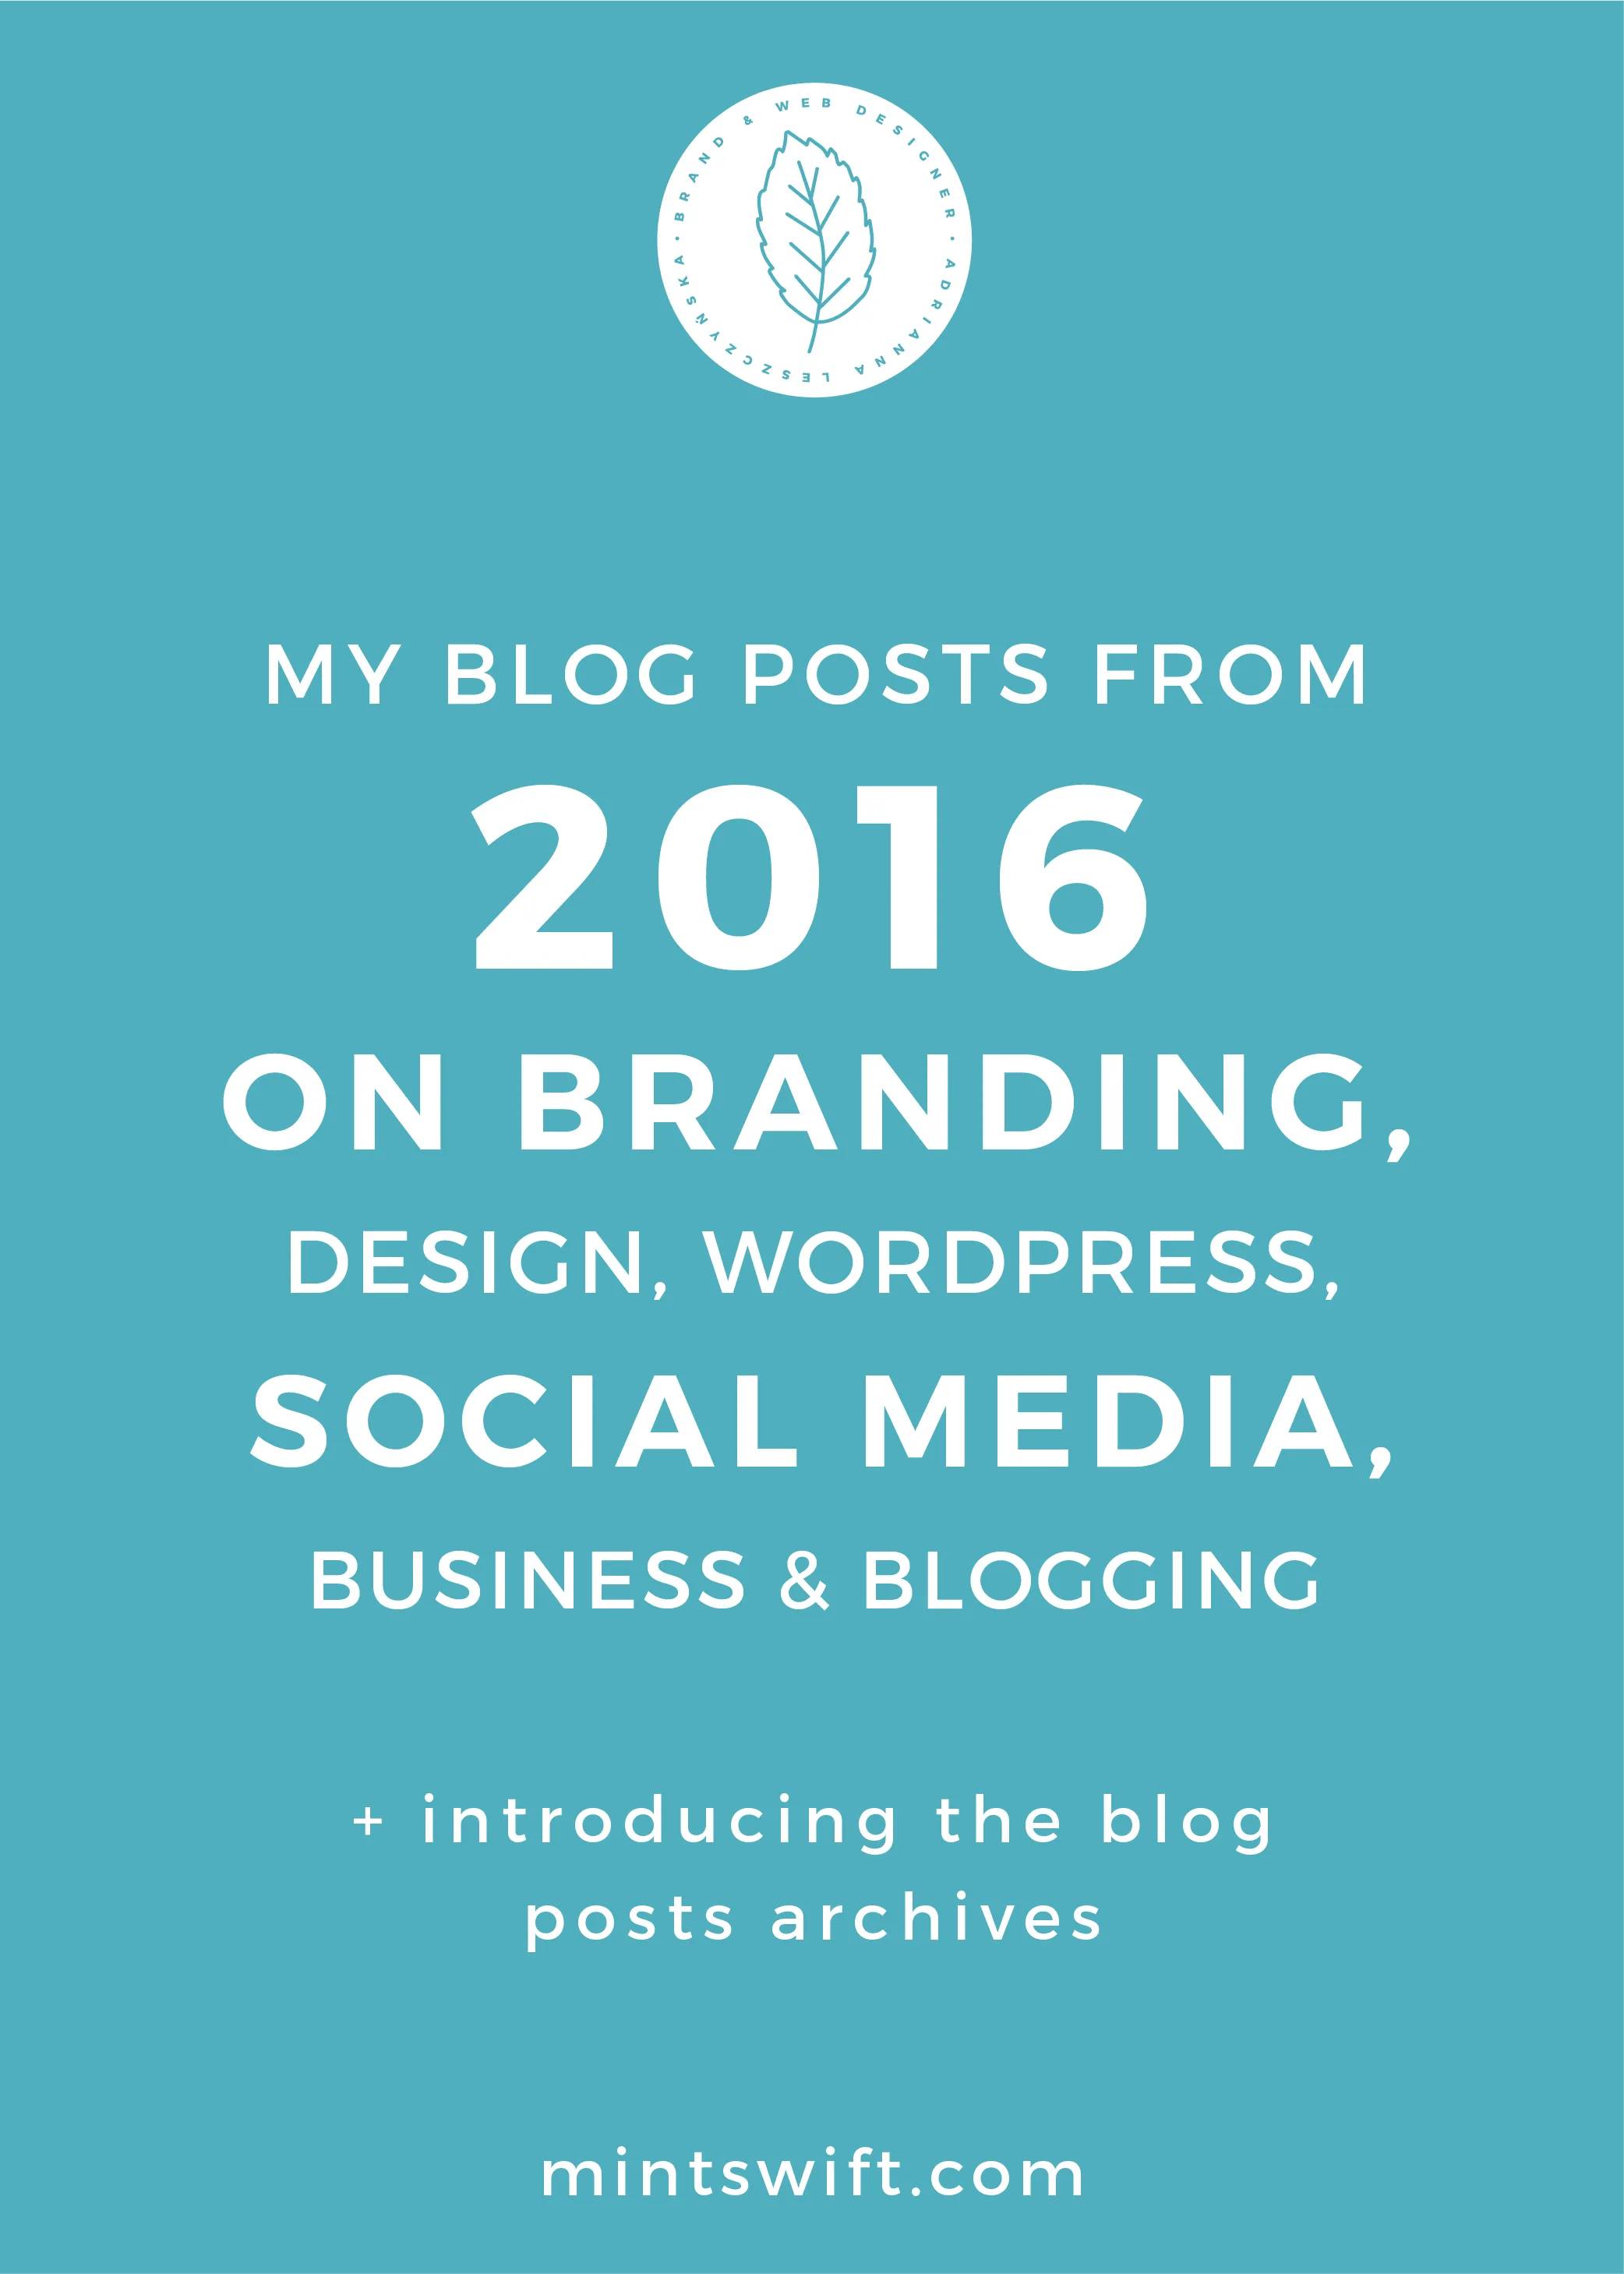 My Blog Posts from 2016 on Branding, Design, WordPress, Social Media, Business & Blogging (+ Introducing the Blog Posts Archives) - MintSwift